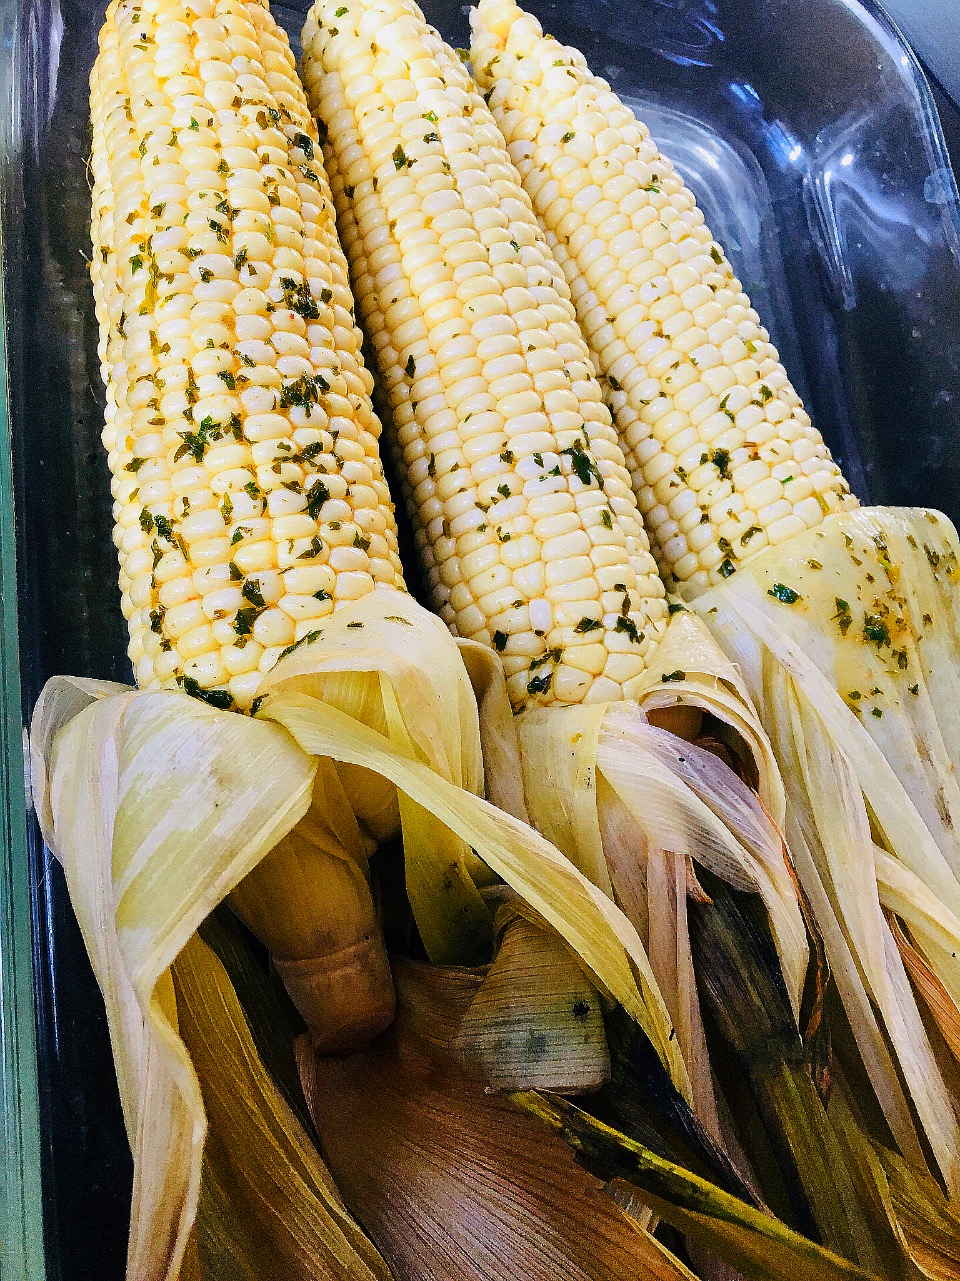 Smoked Corn on the Cob